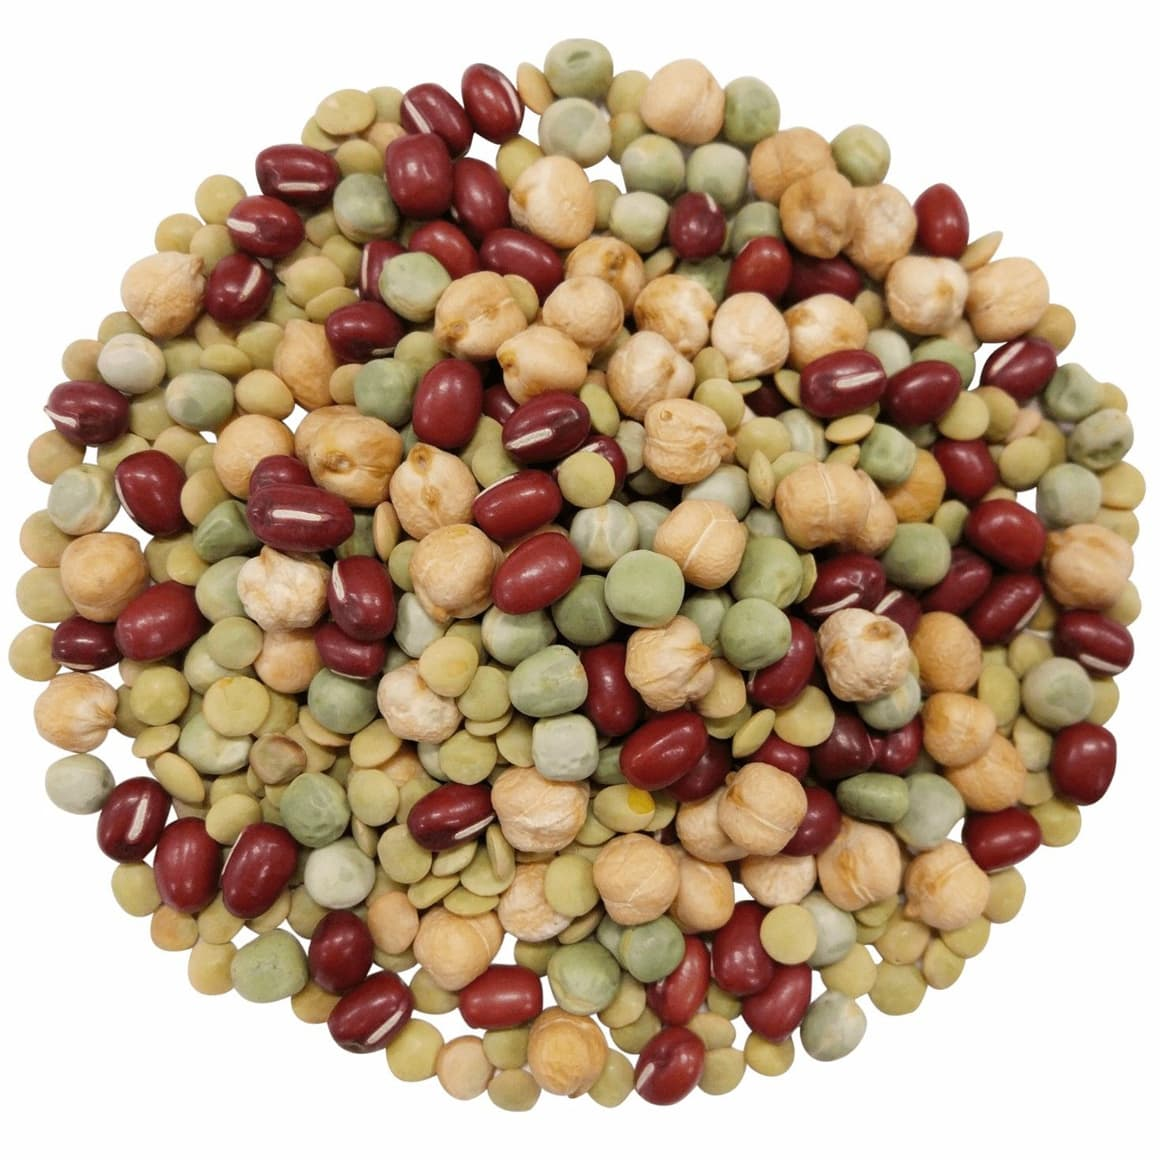 Crunchy Mix of Sprouting Beans